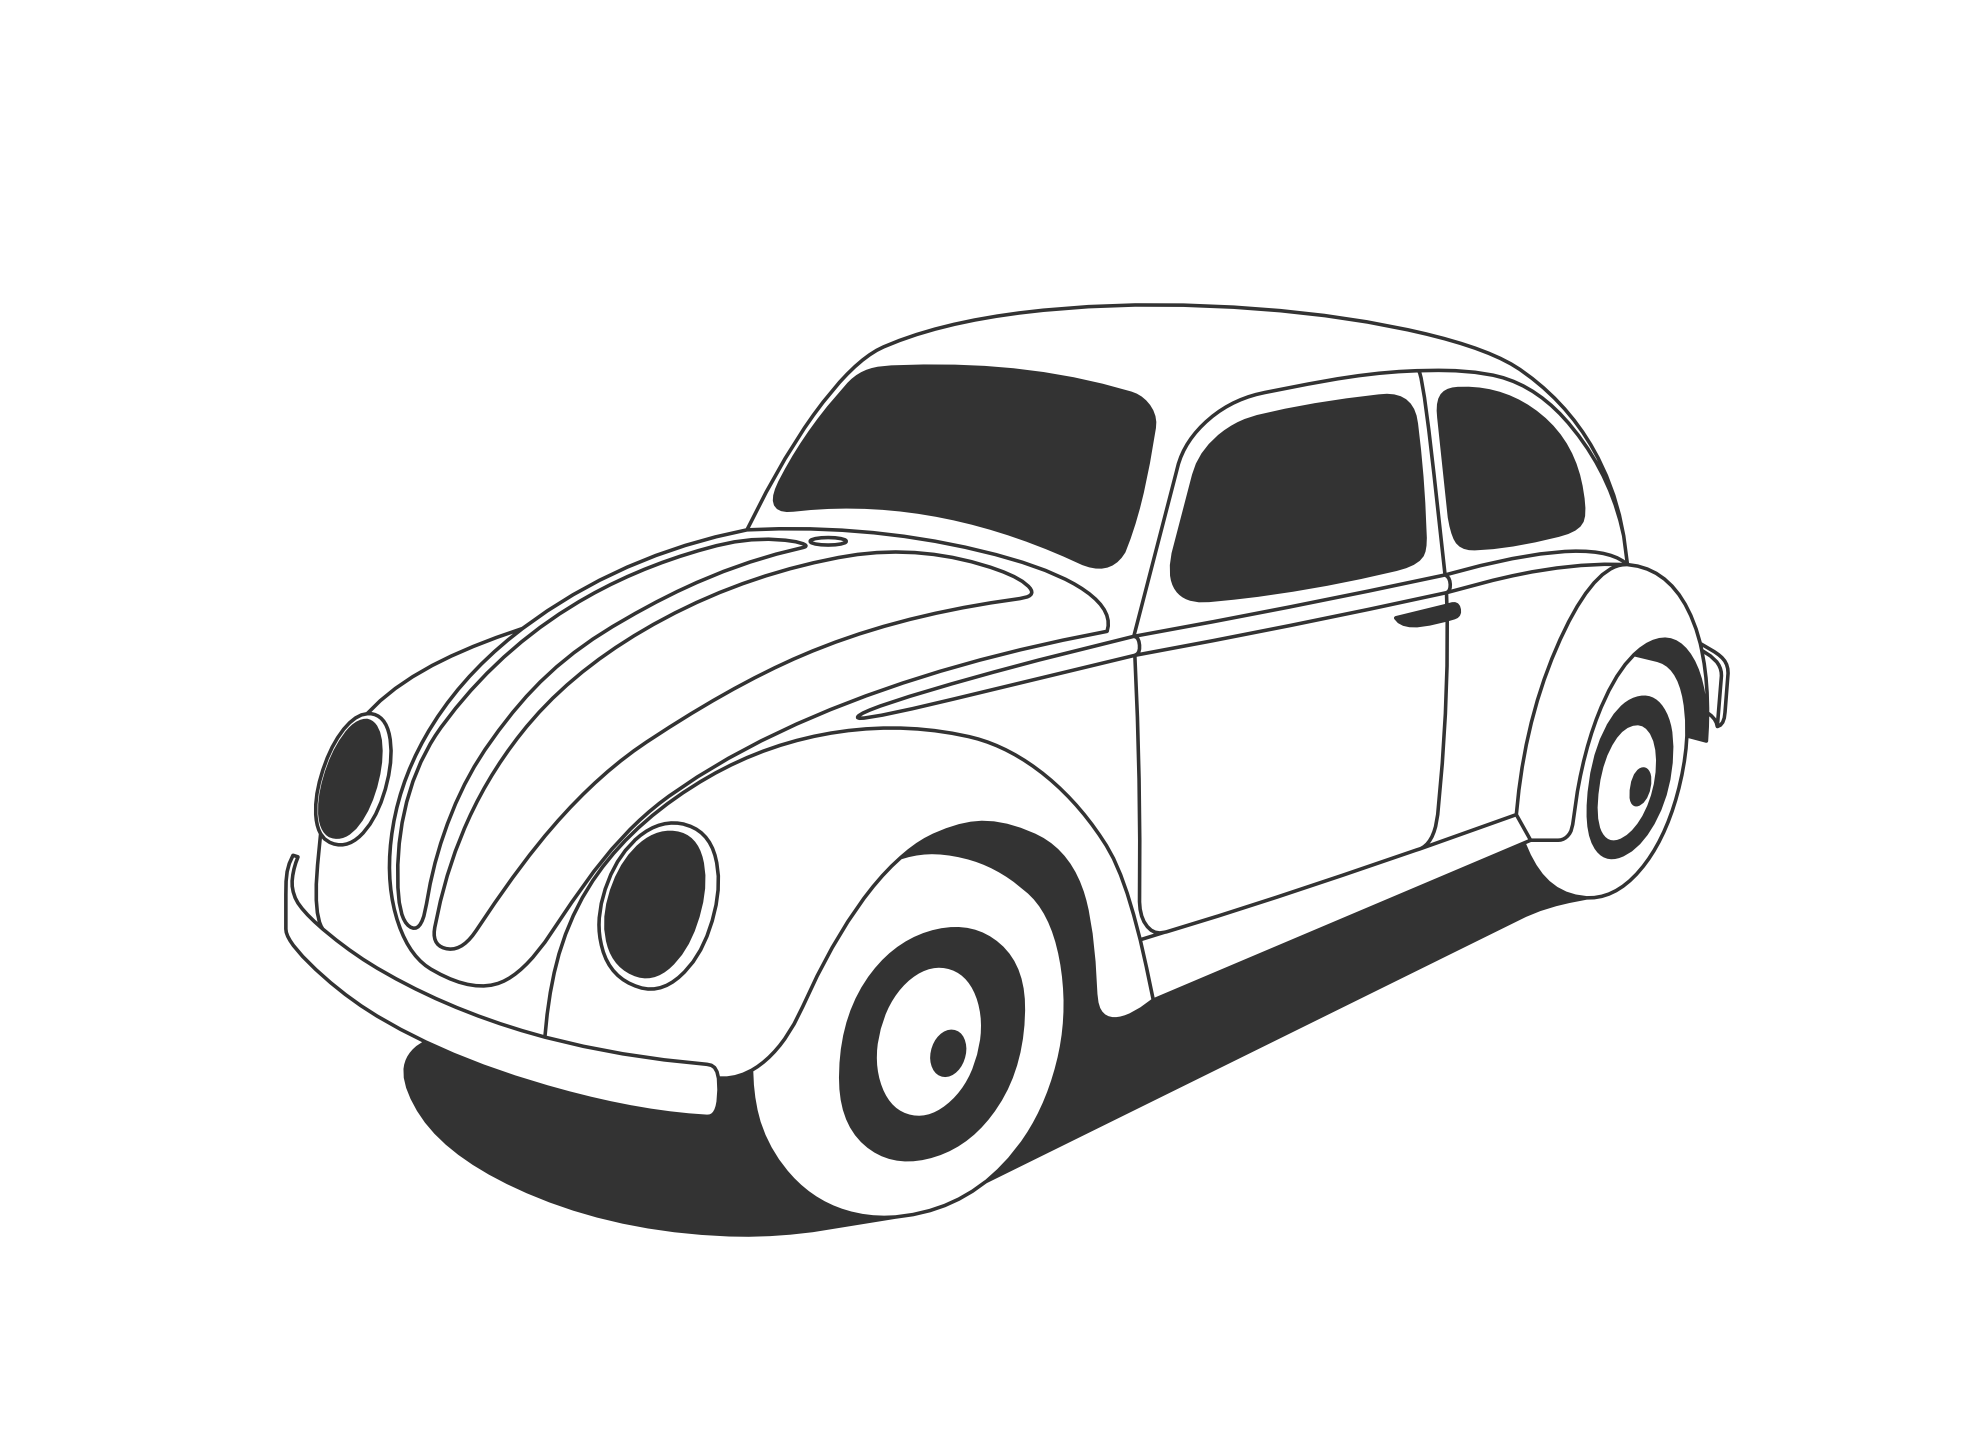 Wedding car clipart vector free download Vector classic car clipart black and white vector free download